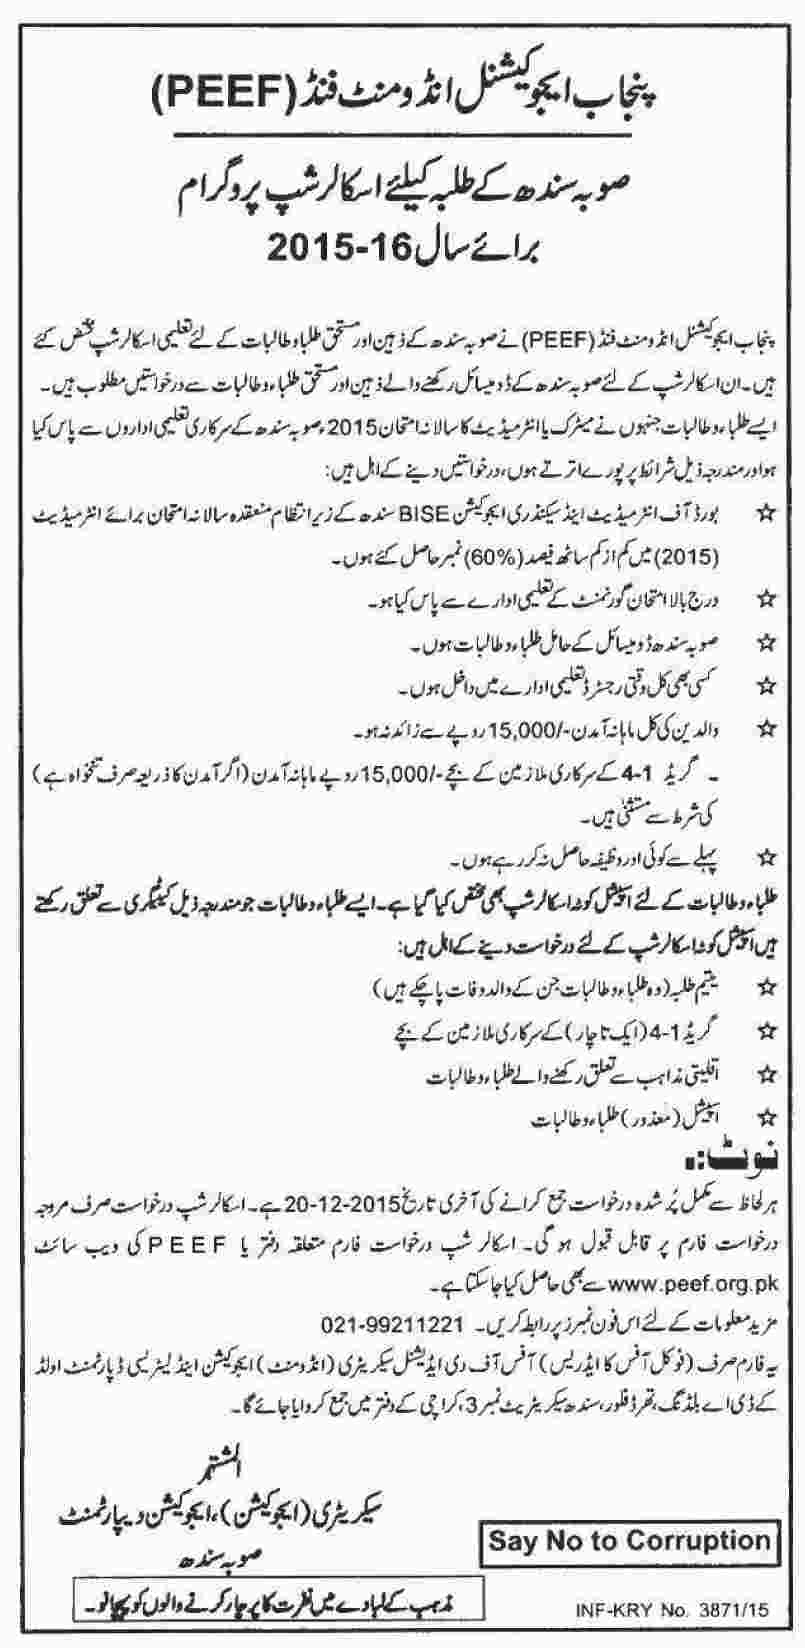 PEEF Scholarship 2015-16 For Sindh Undergraduate peef.org.pk Form Eligibility Date